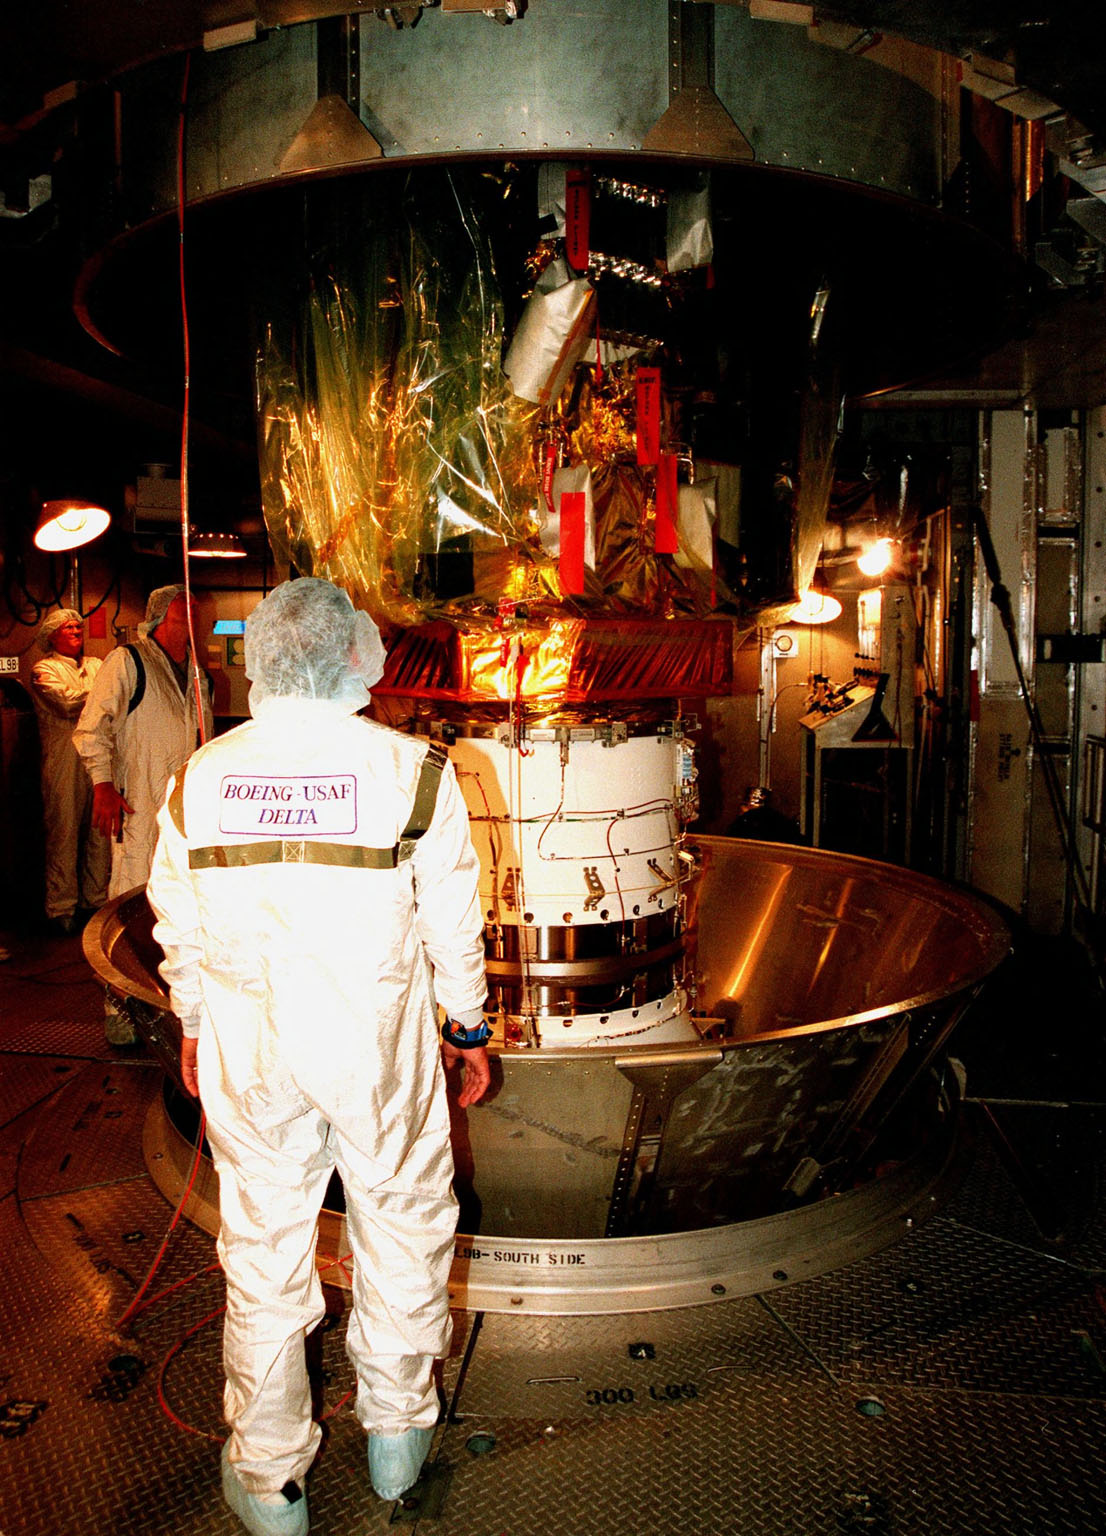 The protective canister is removed from around the Stardust spacecraft at Launch Pad 17-A, Cape Canaveral Air Station. Preparations continue for liftoff of the Boeing Delta II rocket carrying Stardust on Feb. 6. Stardust is destined for a close encounter with the comet Wild 2 in January 2004. Using a silicon-based substance called aerogel, Stardust will capture comet particles flying off the nucleus of the comet. The spacecraft also will bring back samples of interstellar dust. These materials consist of ancient pre-solar interstellar grains and other remnants left over from the formation of the solar system. Scientists expect their analysis to provide important insights into the evolution of the sun and planets and possibly into the origin of life itself. The collected samples will return to Earth in a sample return capsule to be jettisoned as Stardust swings by Earth in January 2006